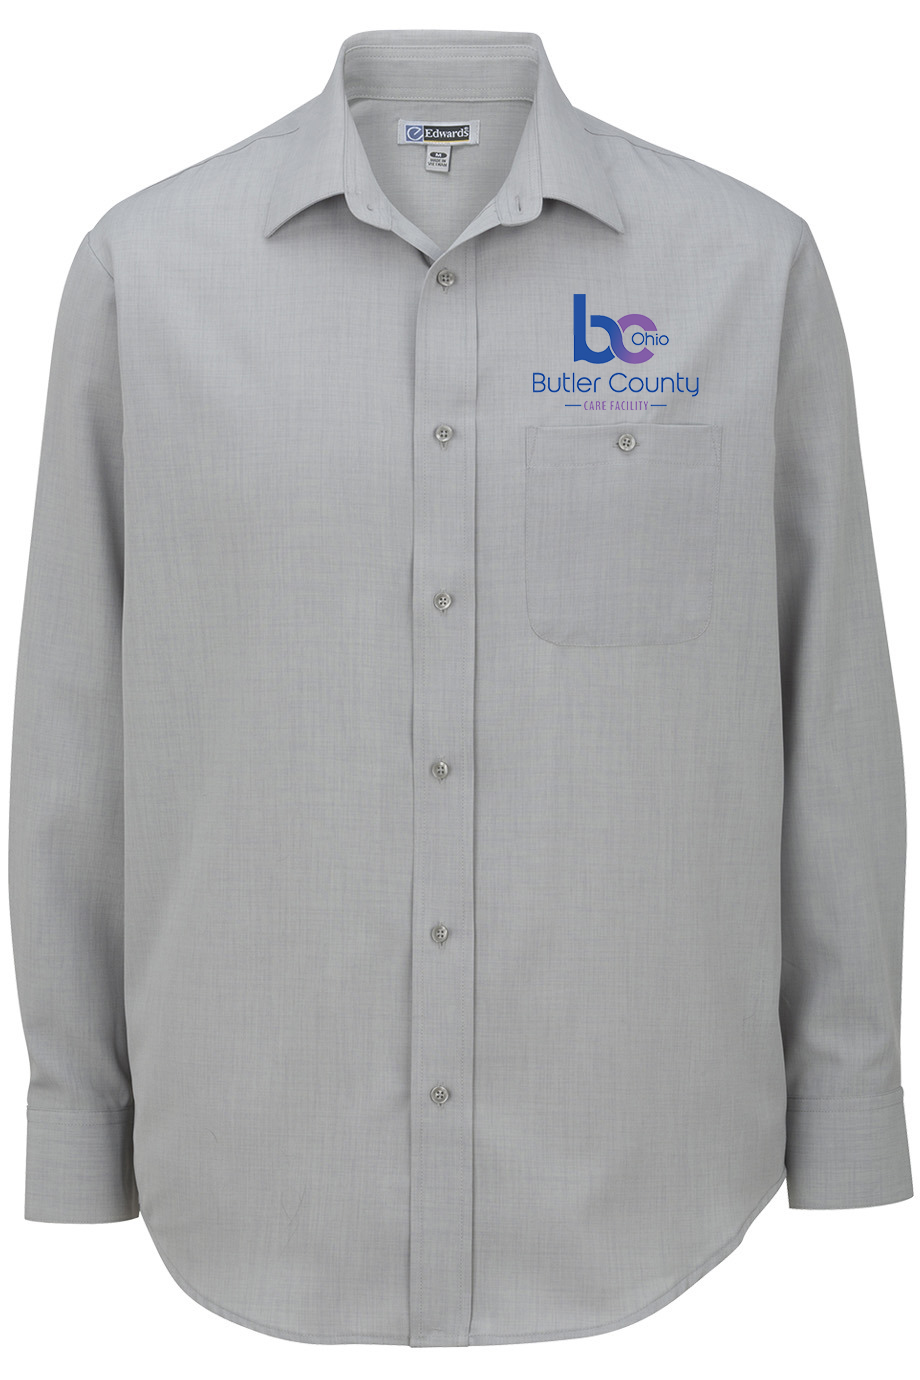 1292 Batiste Fly Shirt-Edwards